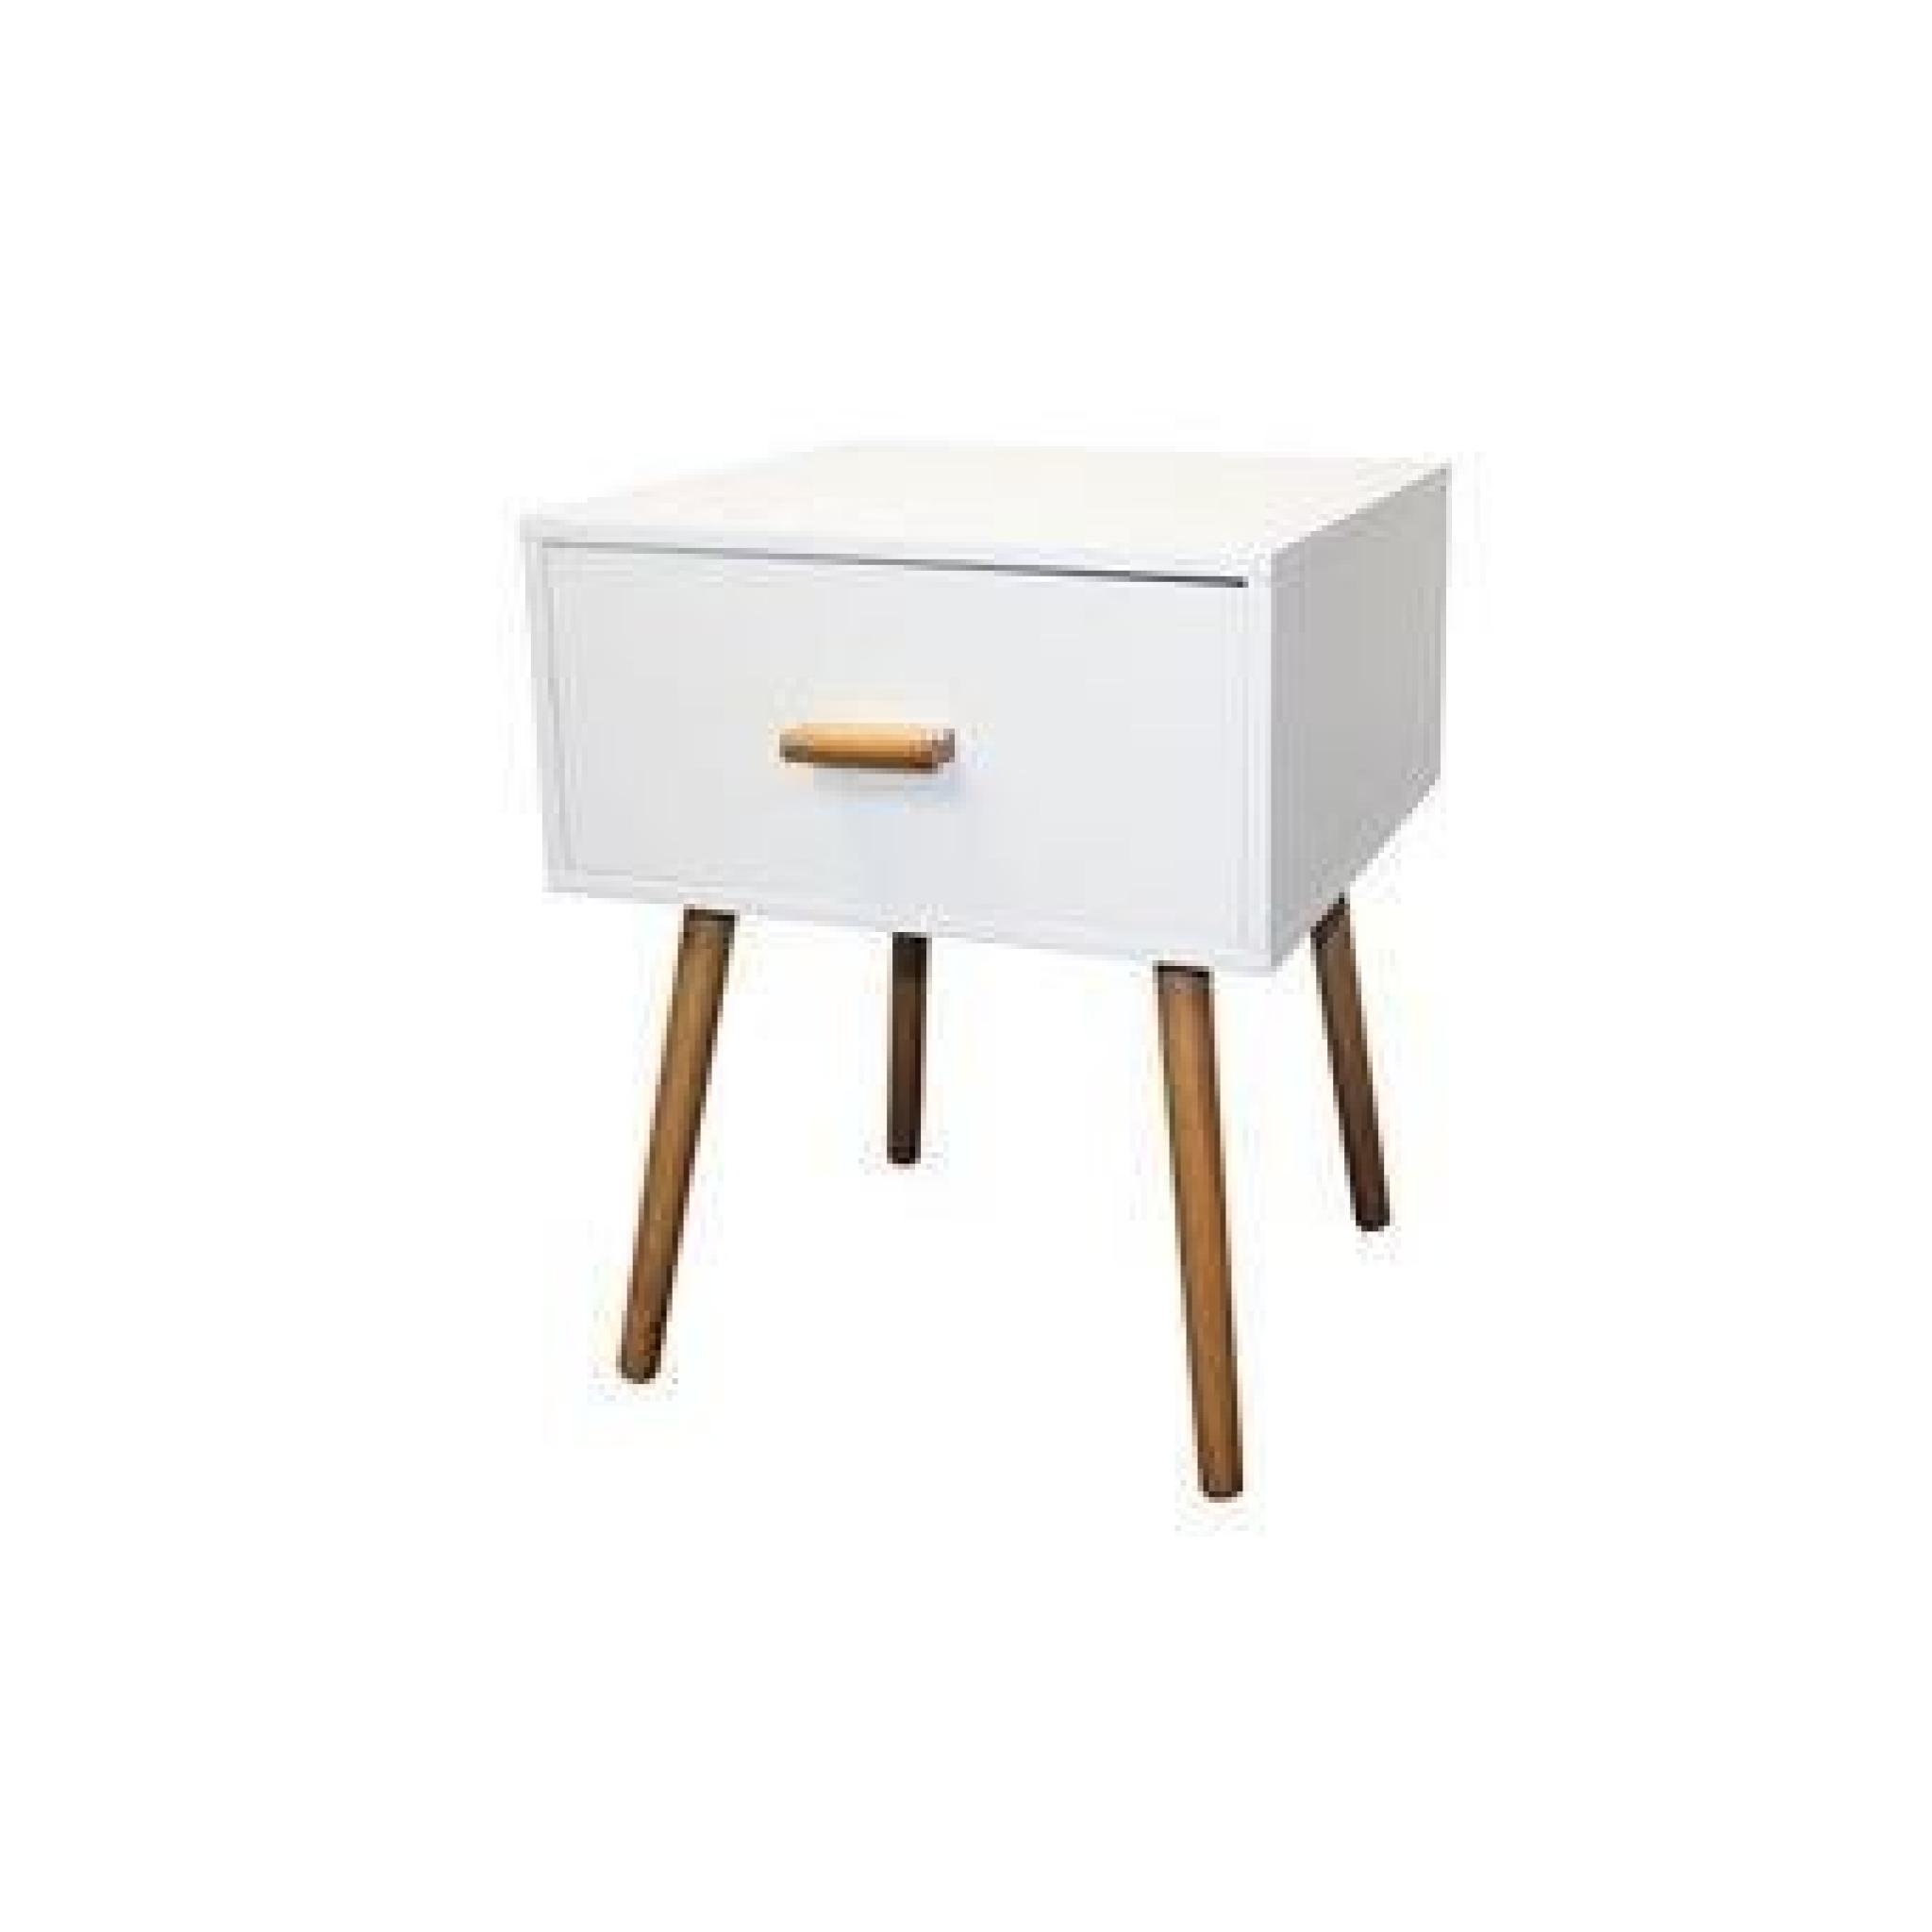 Table de chevet blanc design scandinave achat vente - Table de chevet pas cher ...